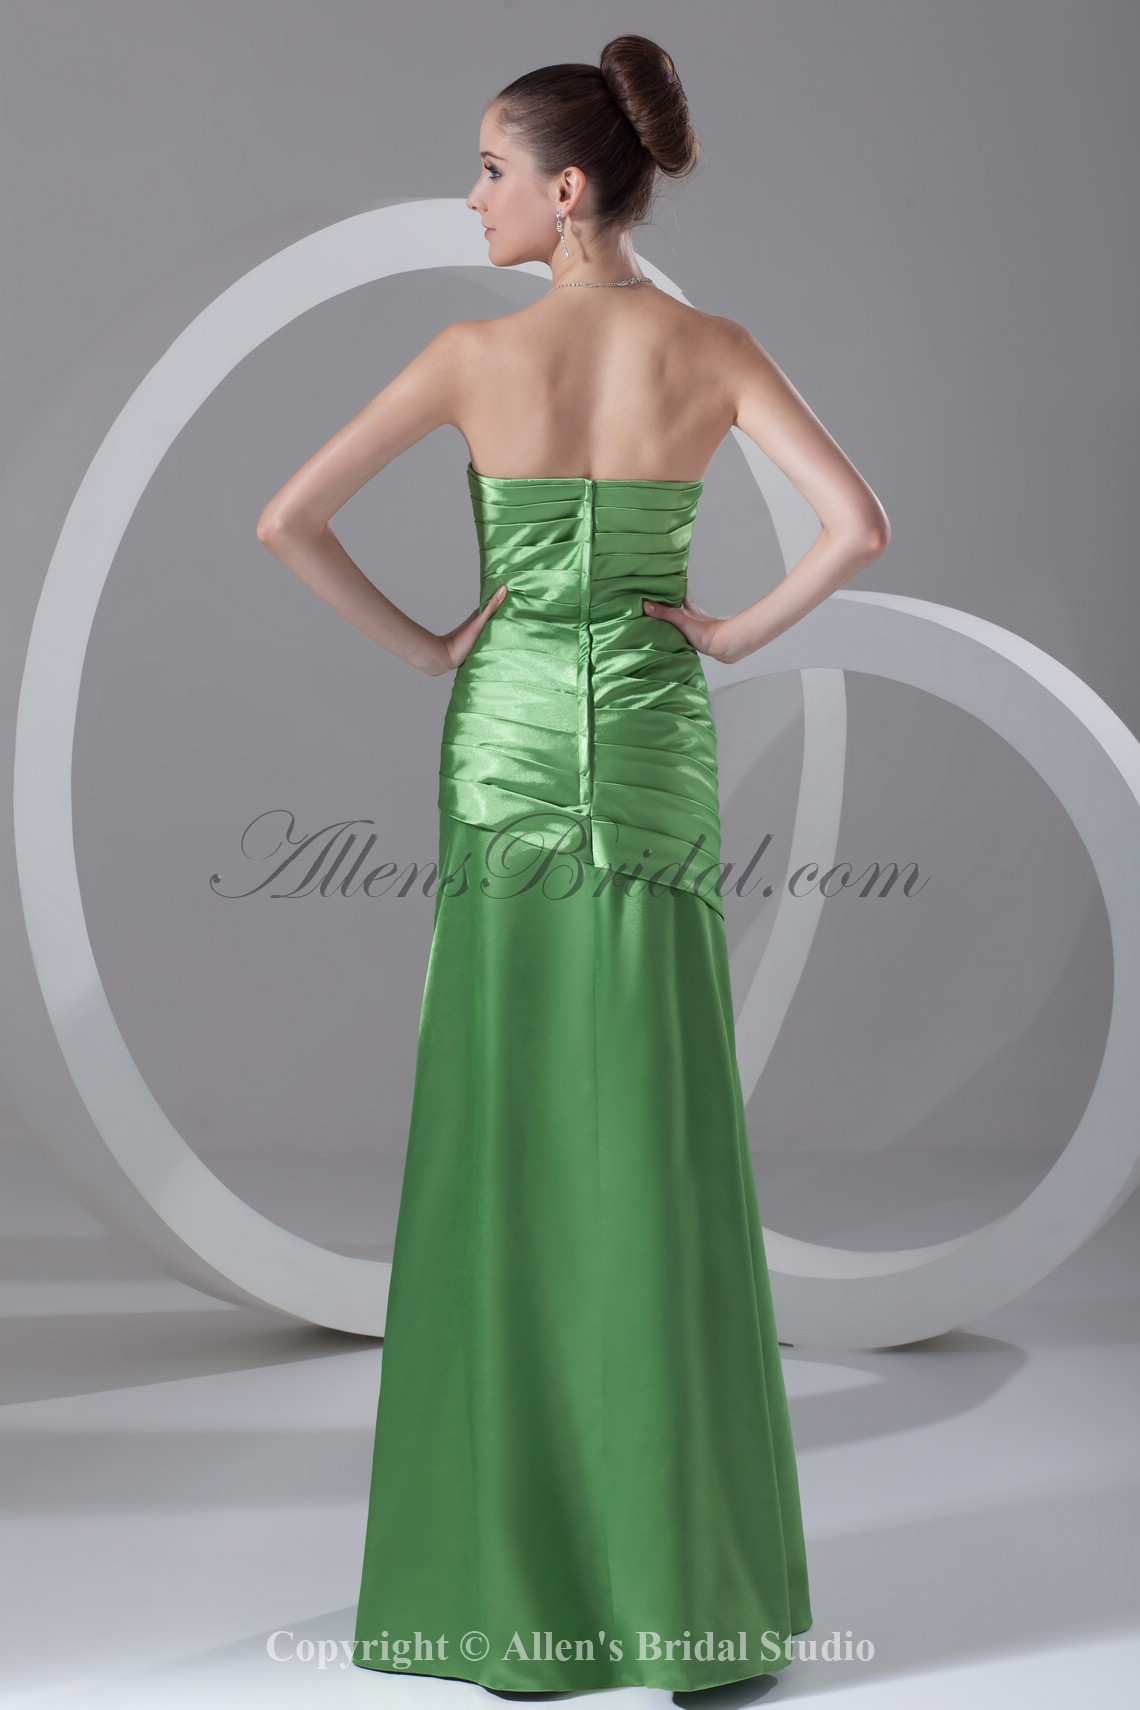 /455-3645/satin-strapless-neckline-floor-length-a-line-directionally-ruched-prom-dress.jpg